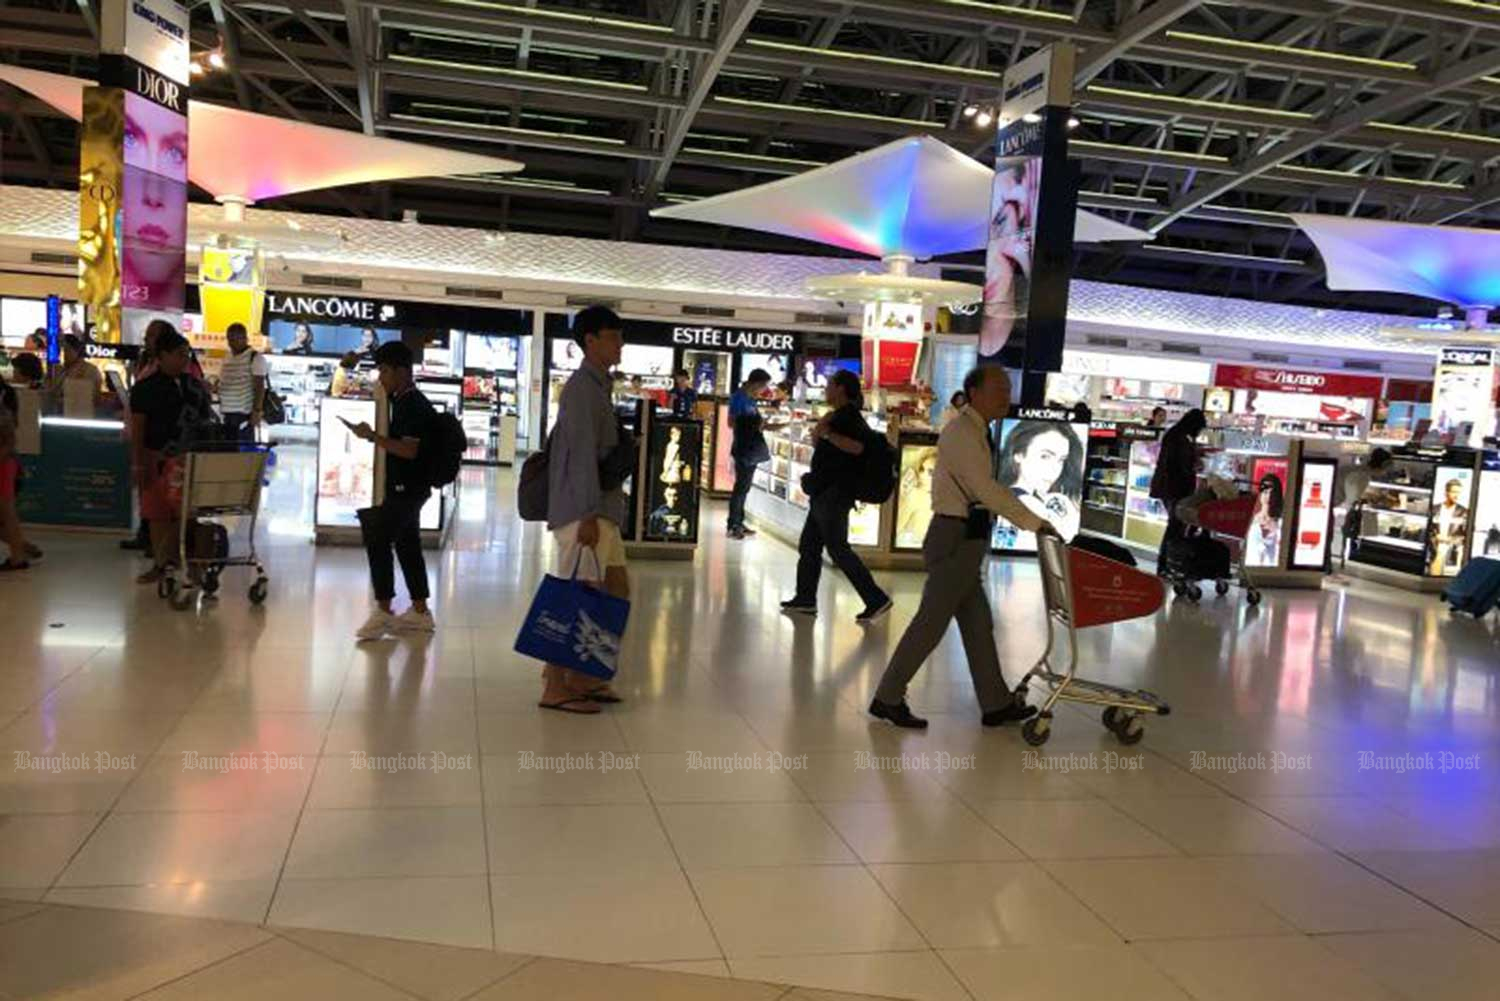 Airports of Thailand says duty-free giant King Power is the sole applicant for the duty-free contract at Don Mueang airport. (File photo)